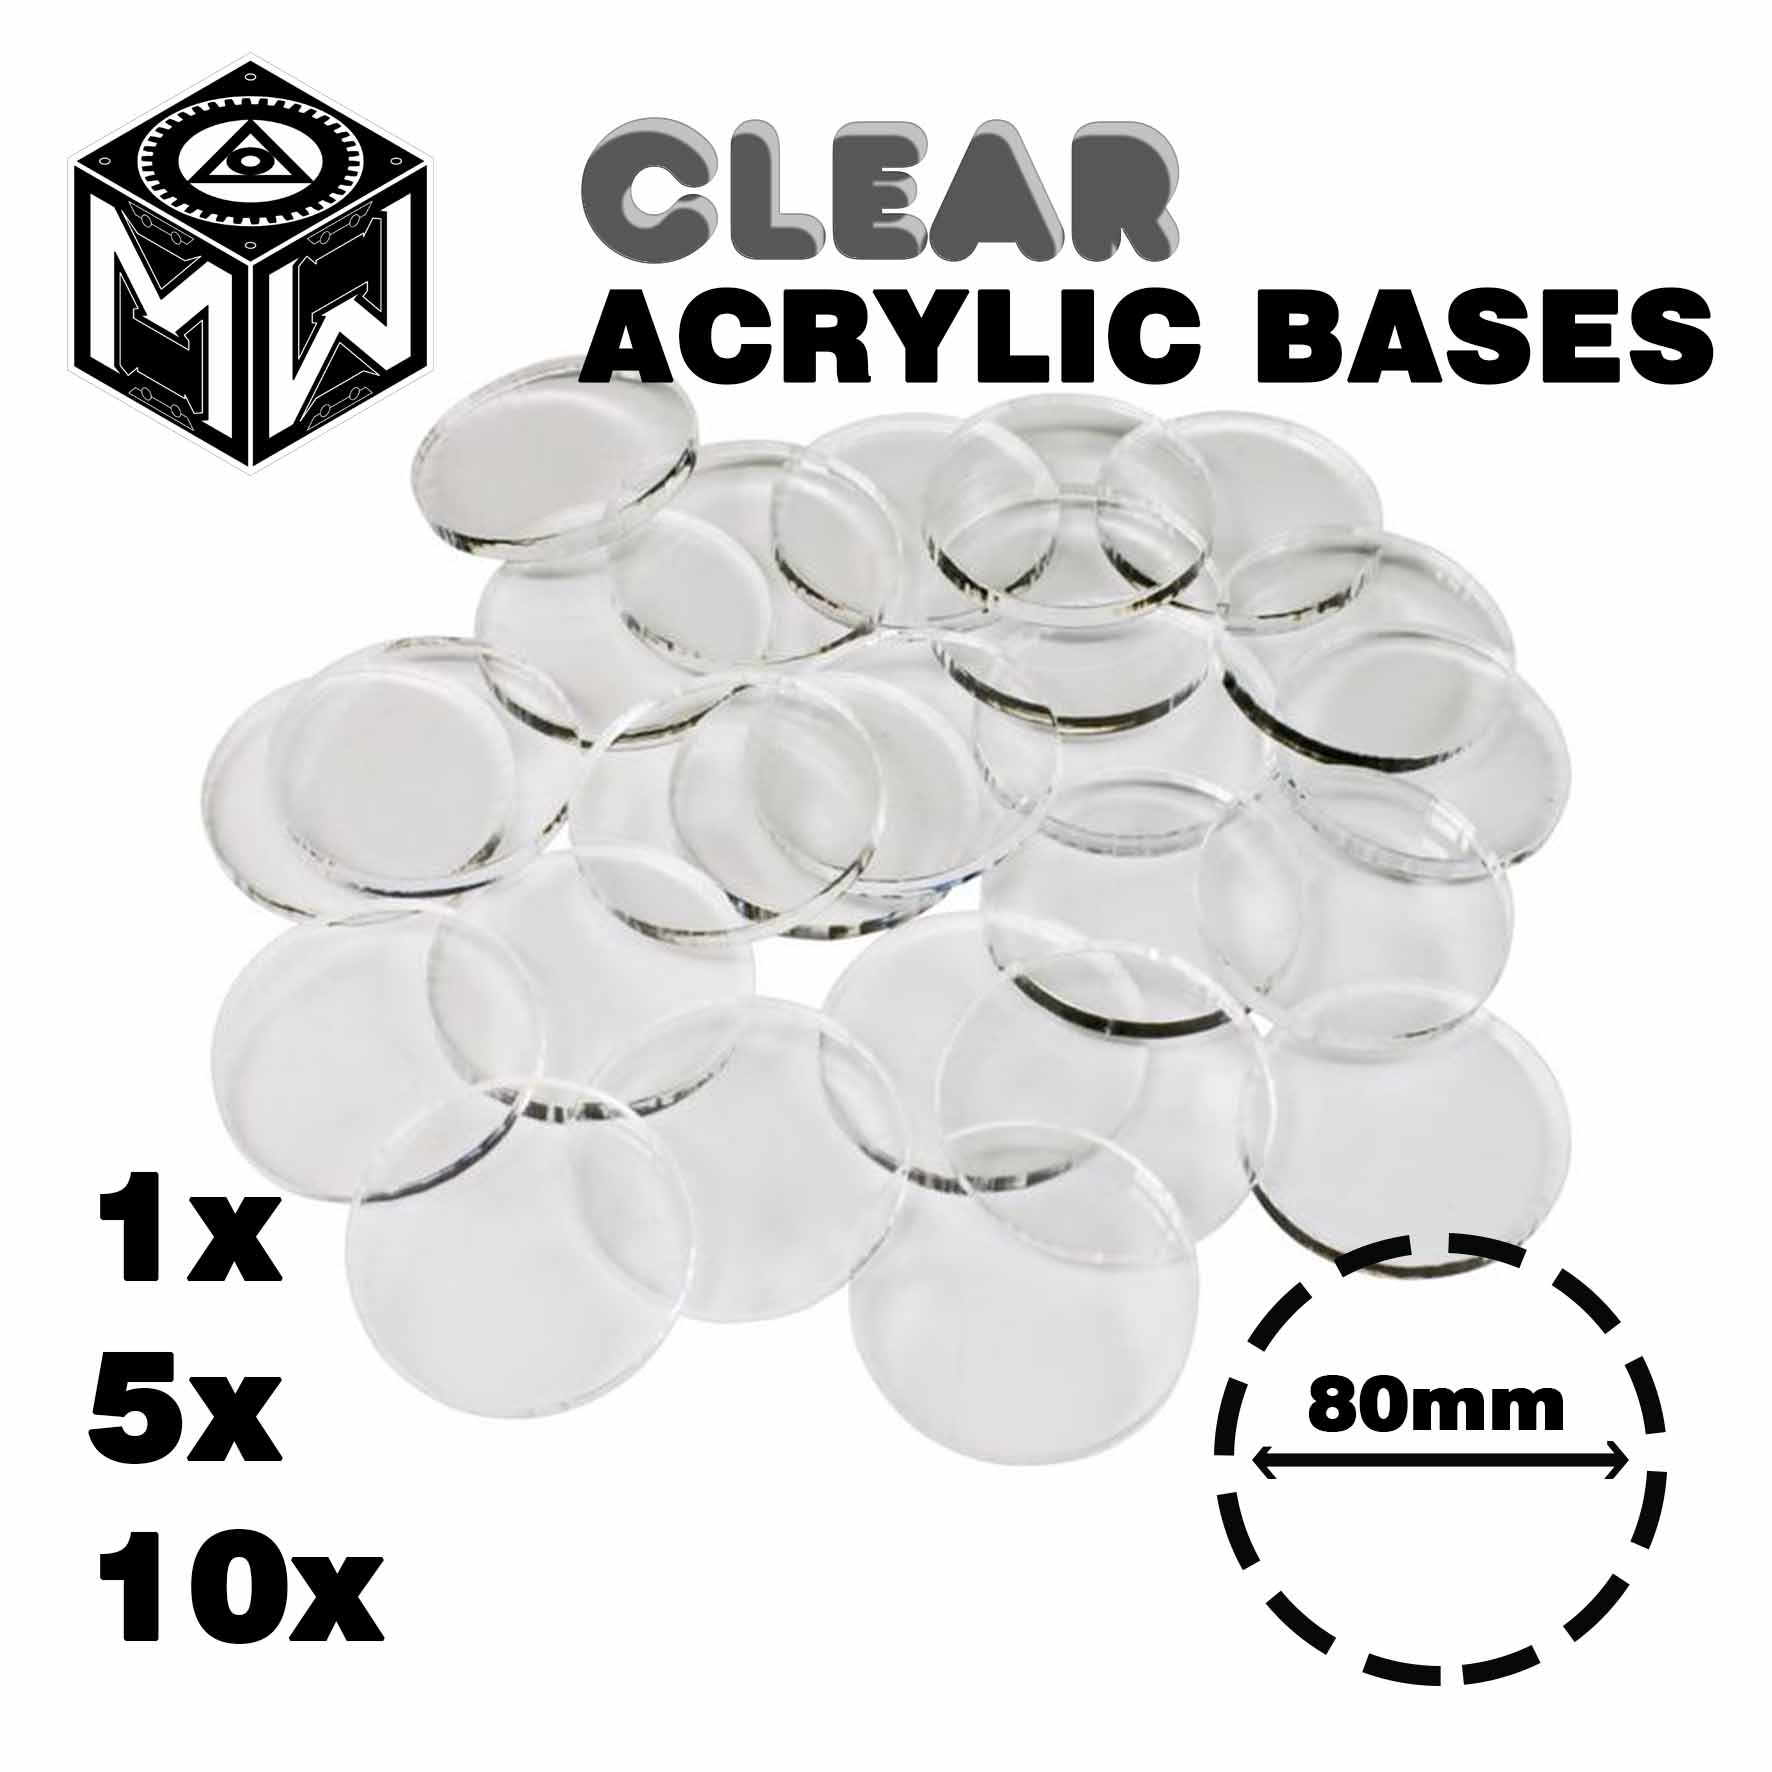 3mm Acrylic Clear Bases, Round 80mm